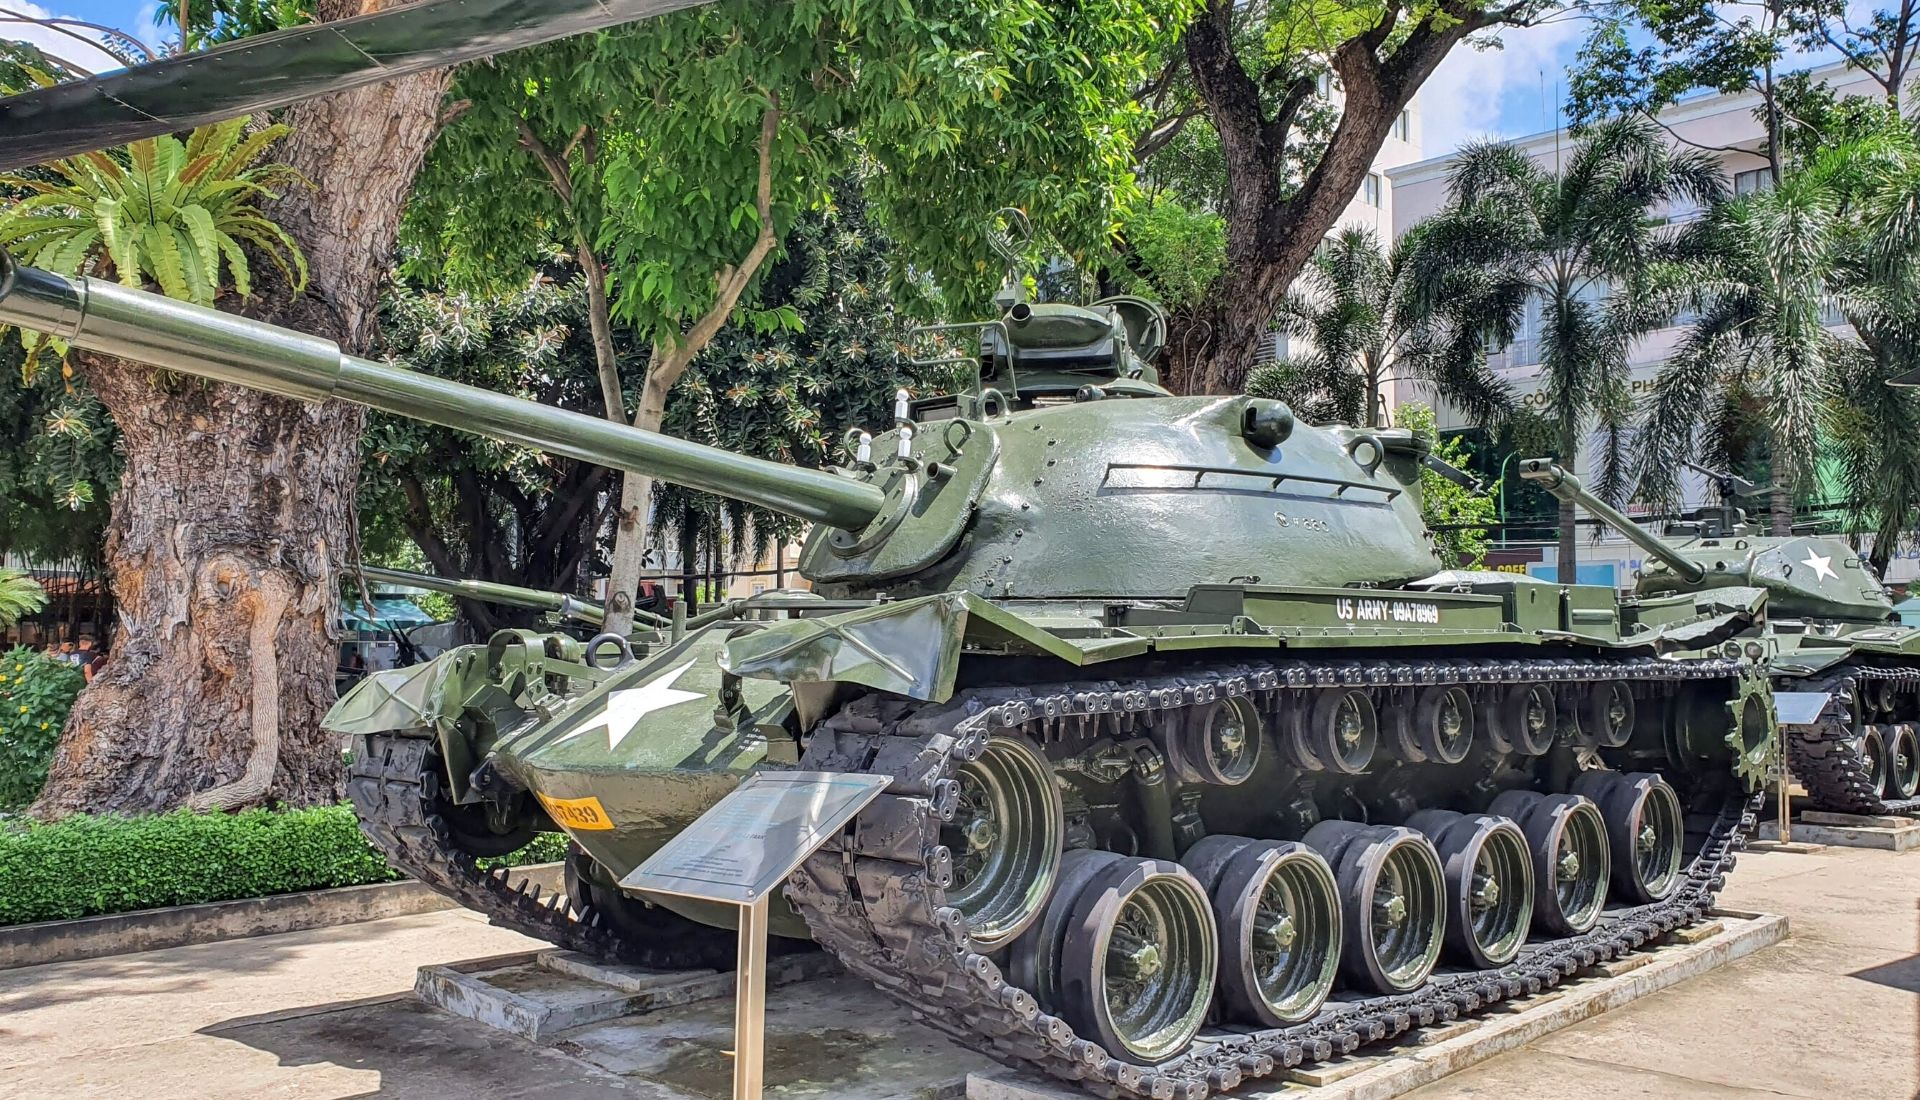 Tanks stationed outside the War Remnants Museum - 5 days in Saigon